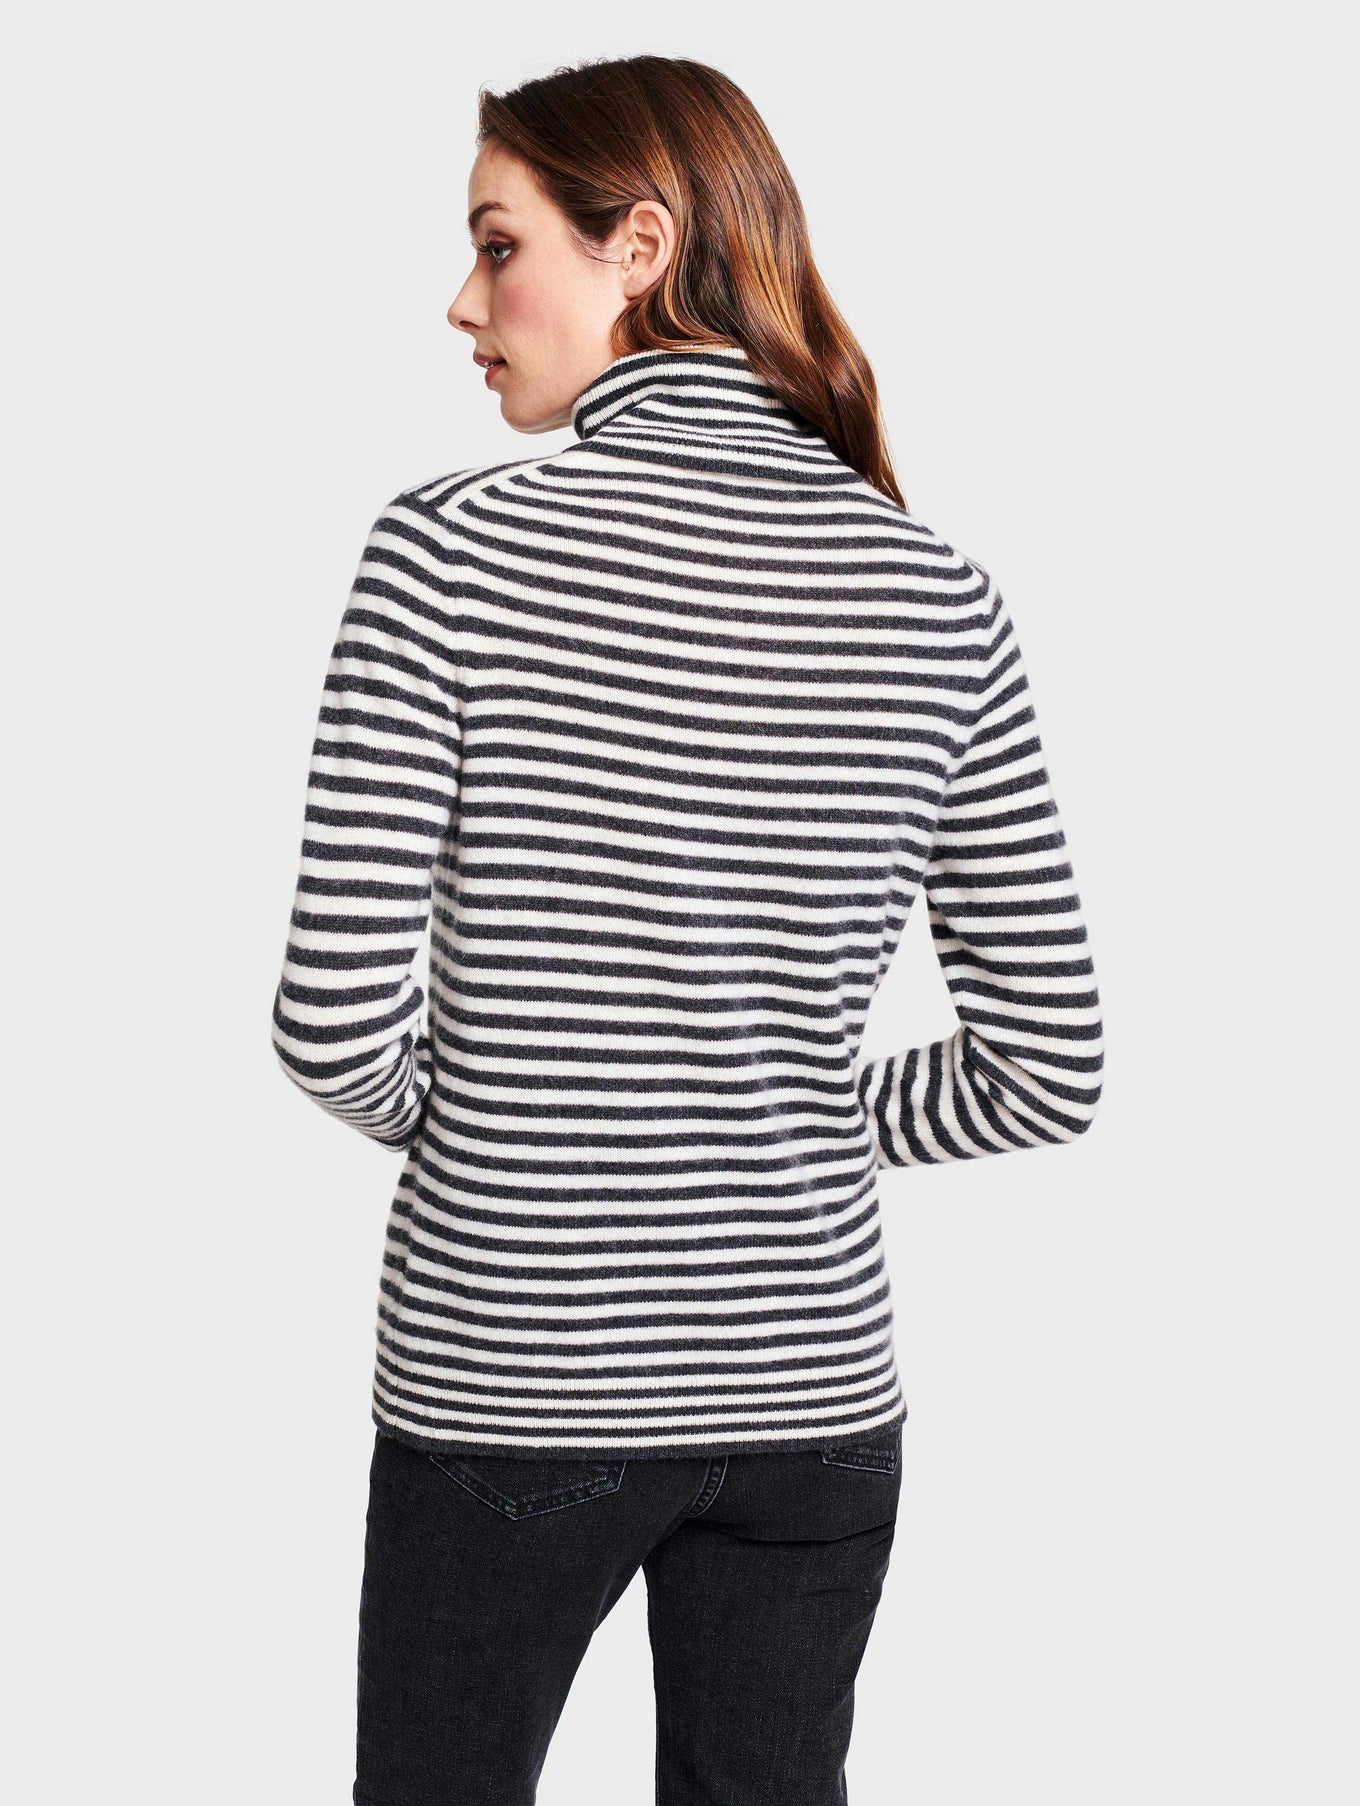 Essential Cashmere Striped Turtleneck